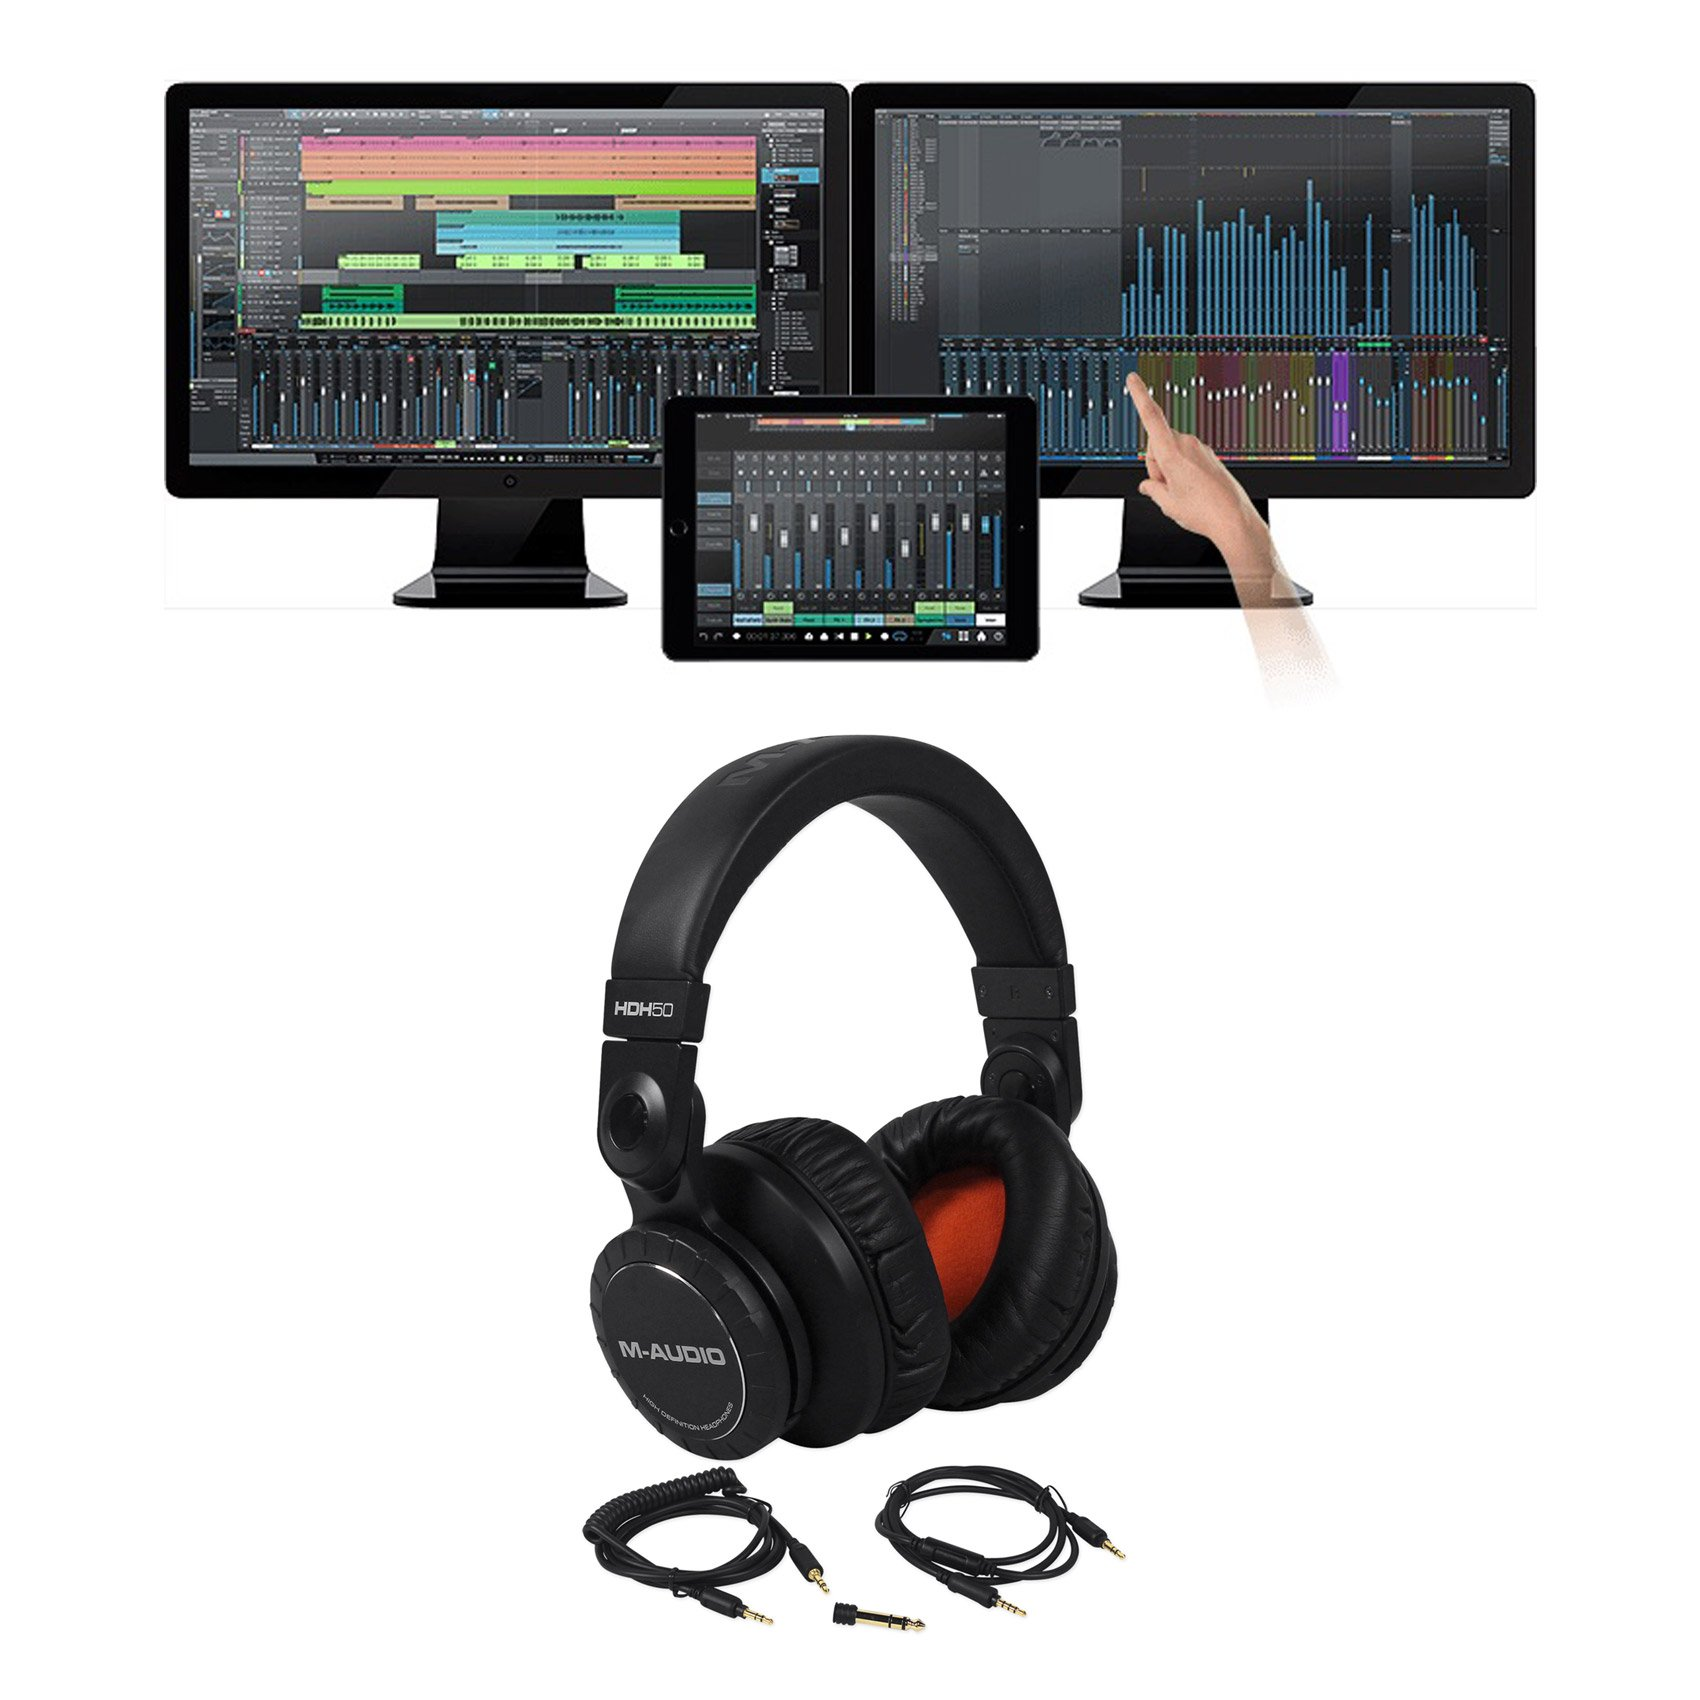 Package: Presonus Studio One 3.0 Professional Audio MIDI Recording DAW Full Software With iPad Integration + M-Audio HDH50 Black Studio/DJ High Definition Reference Headphones